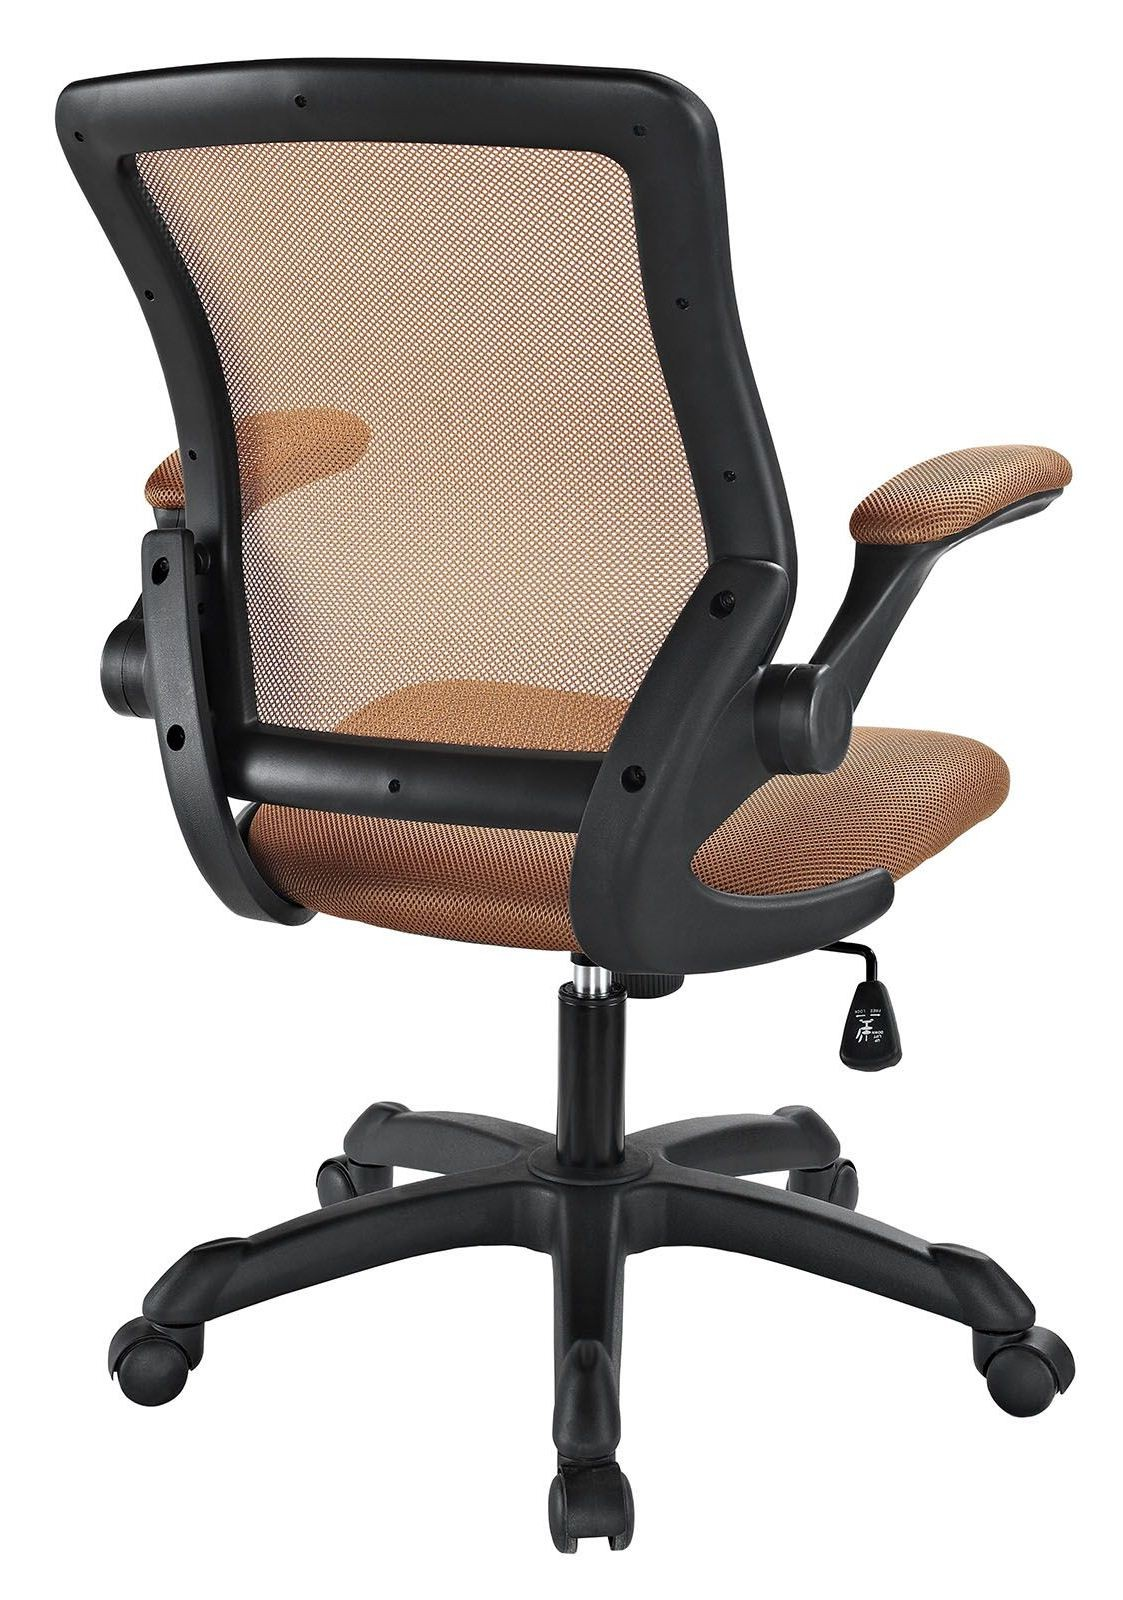 Tan Office Chair Veer Tan Office Chair From Renegade Eei 825 Coleman